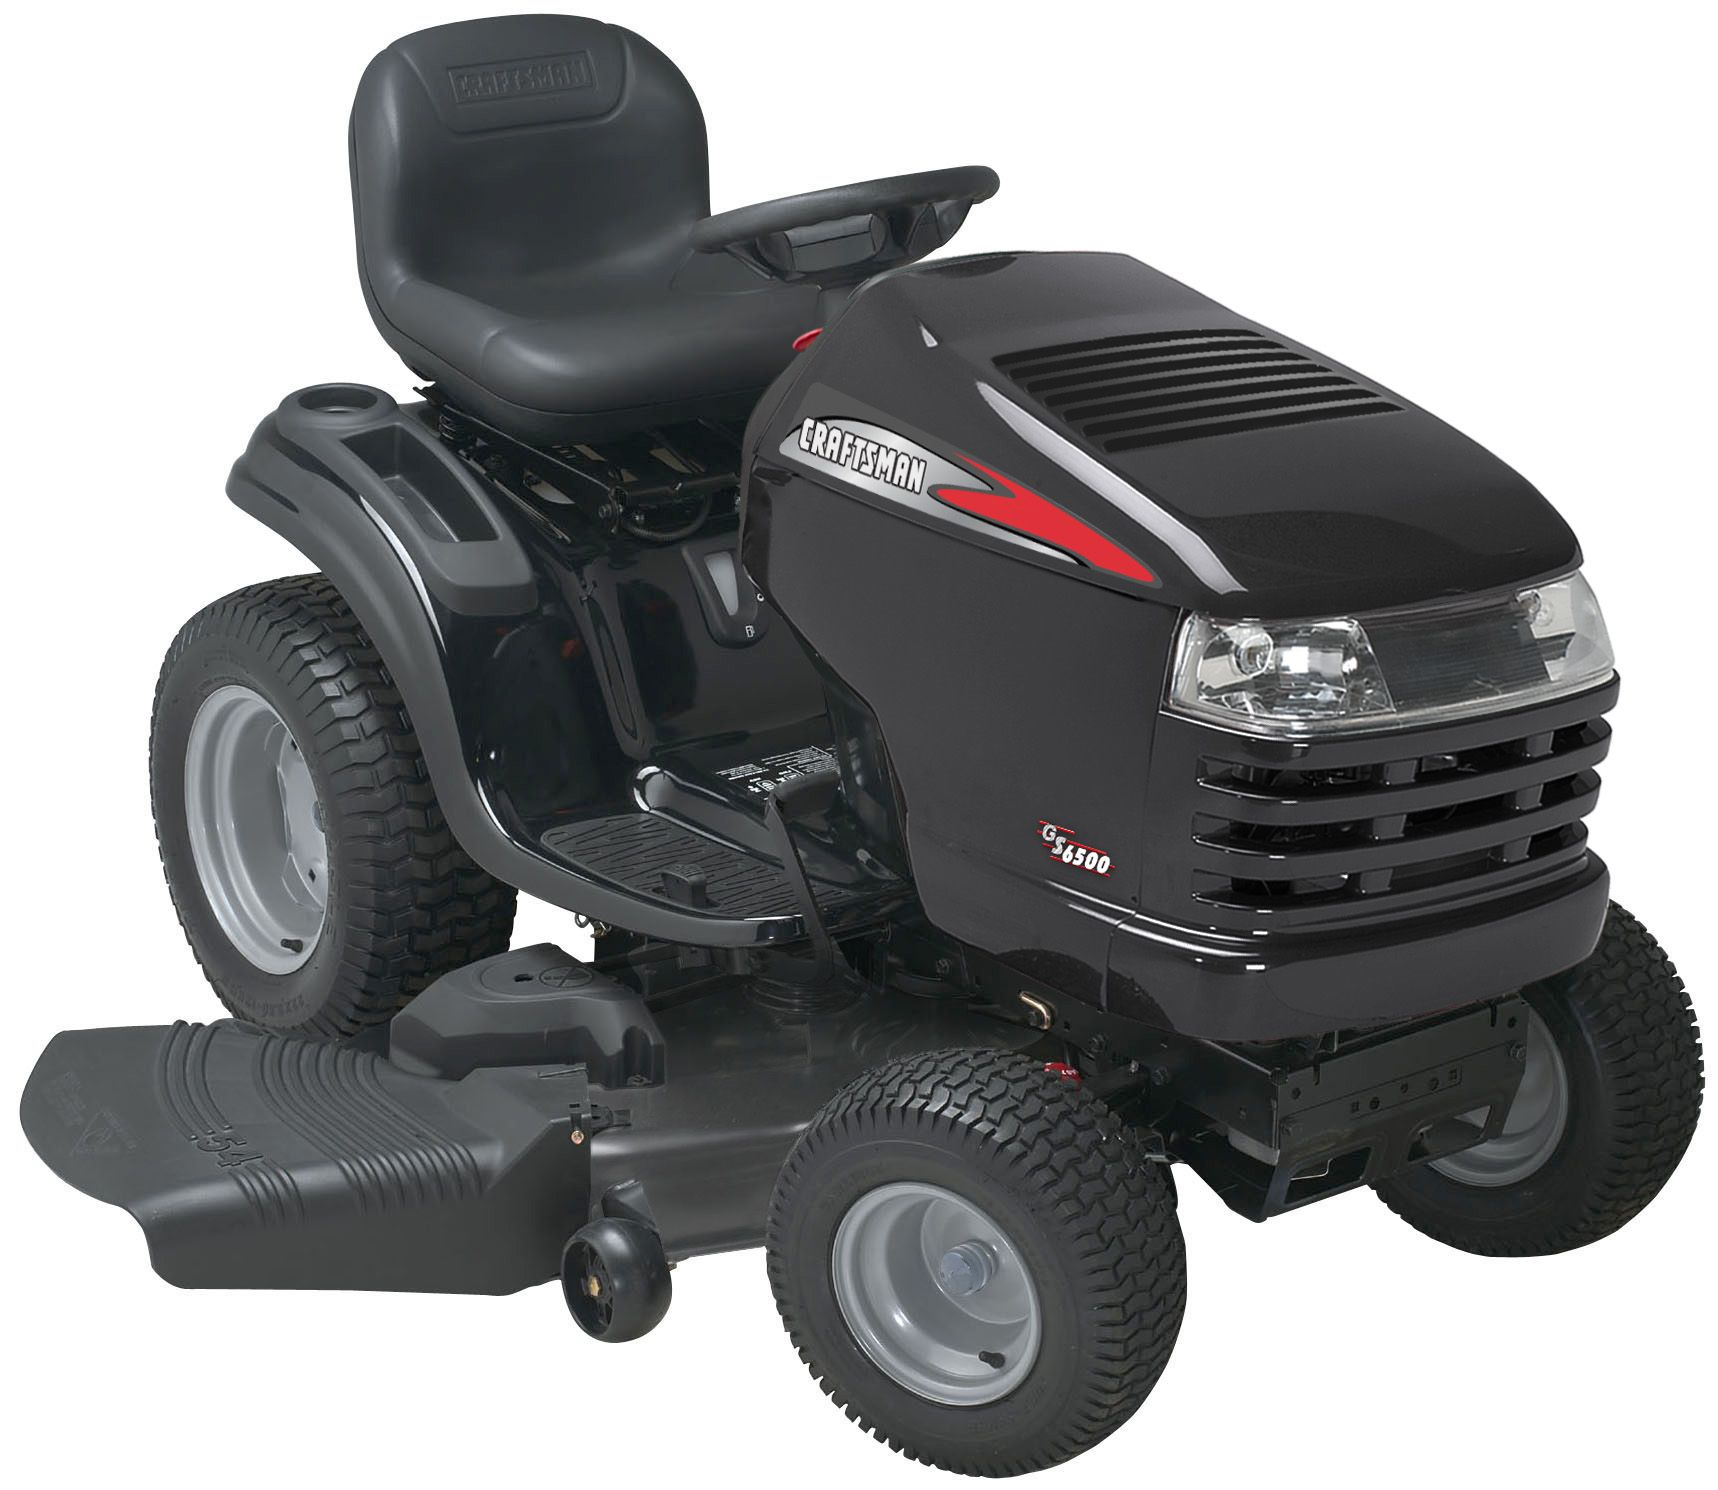 hight resolution of looking for craftsman model 917276921 front engine lawn tractor wiring diagram for gs6500 tractor